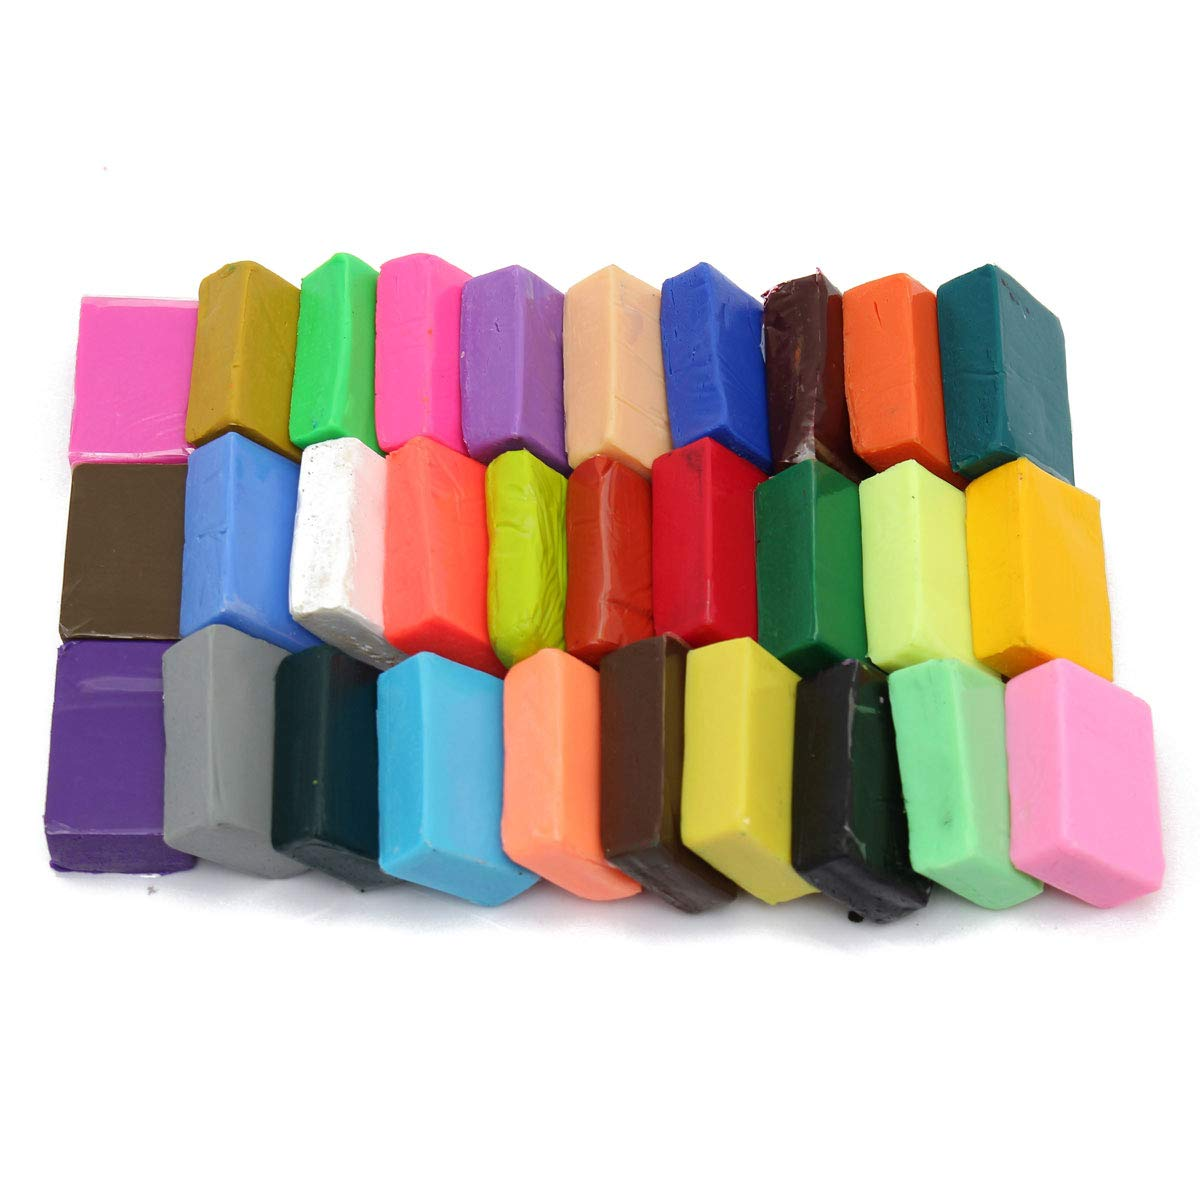 Sala-Deco - Universal 32 Color Oven Bake Polymer Clay Block Modelling Moulding DIY Muticolor Handmade Education Craft Children Favorite